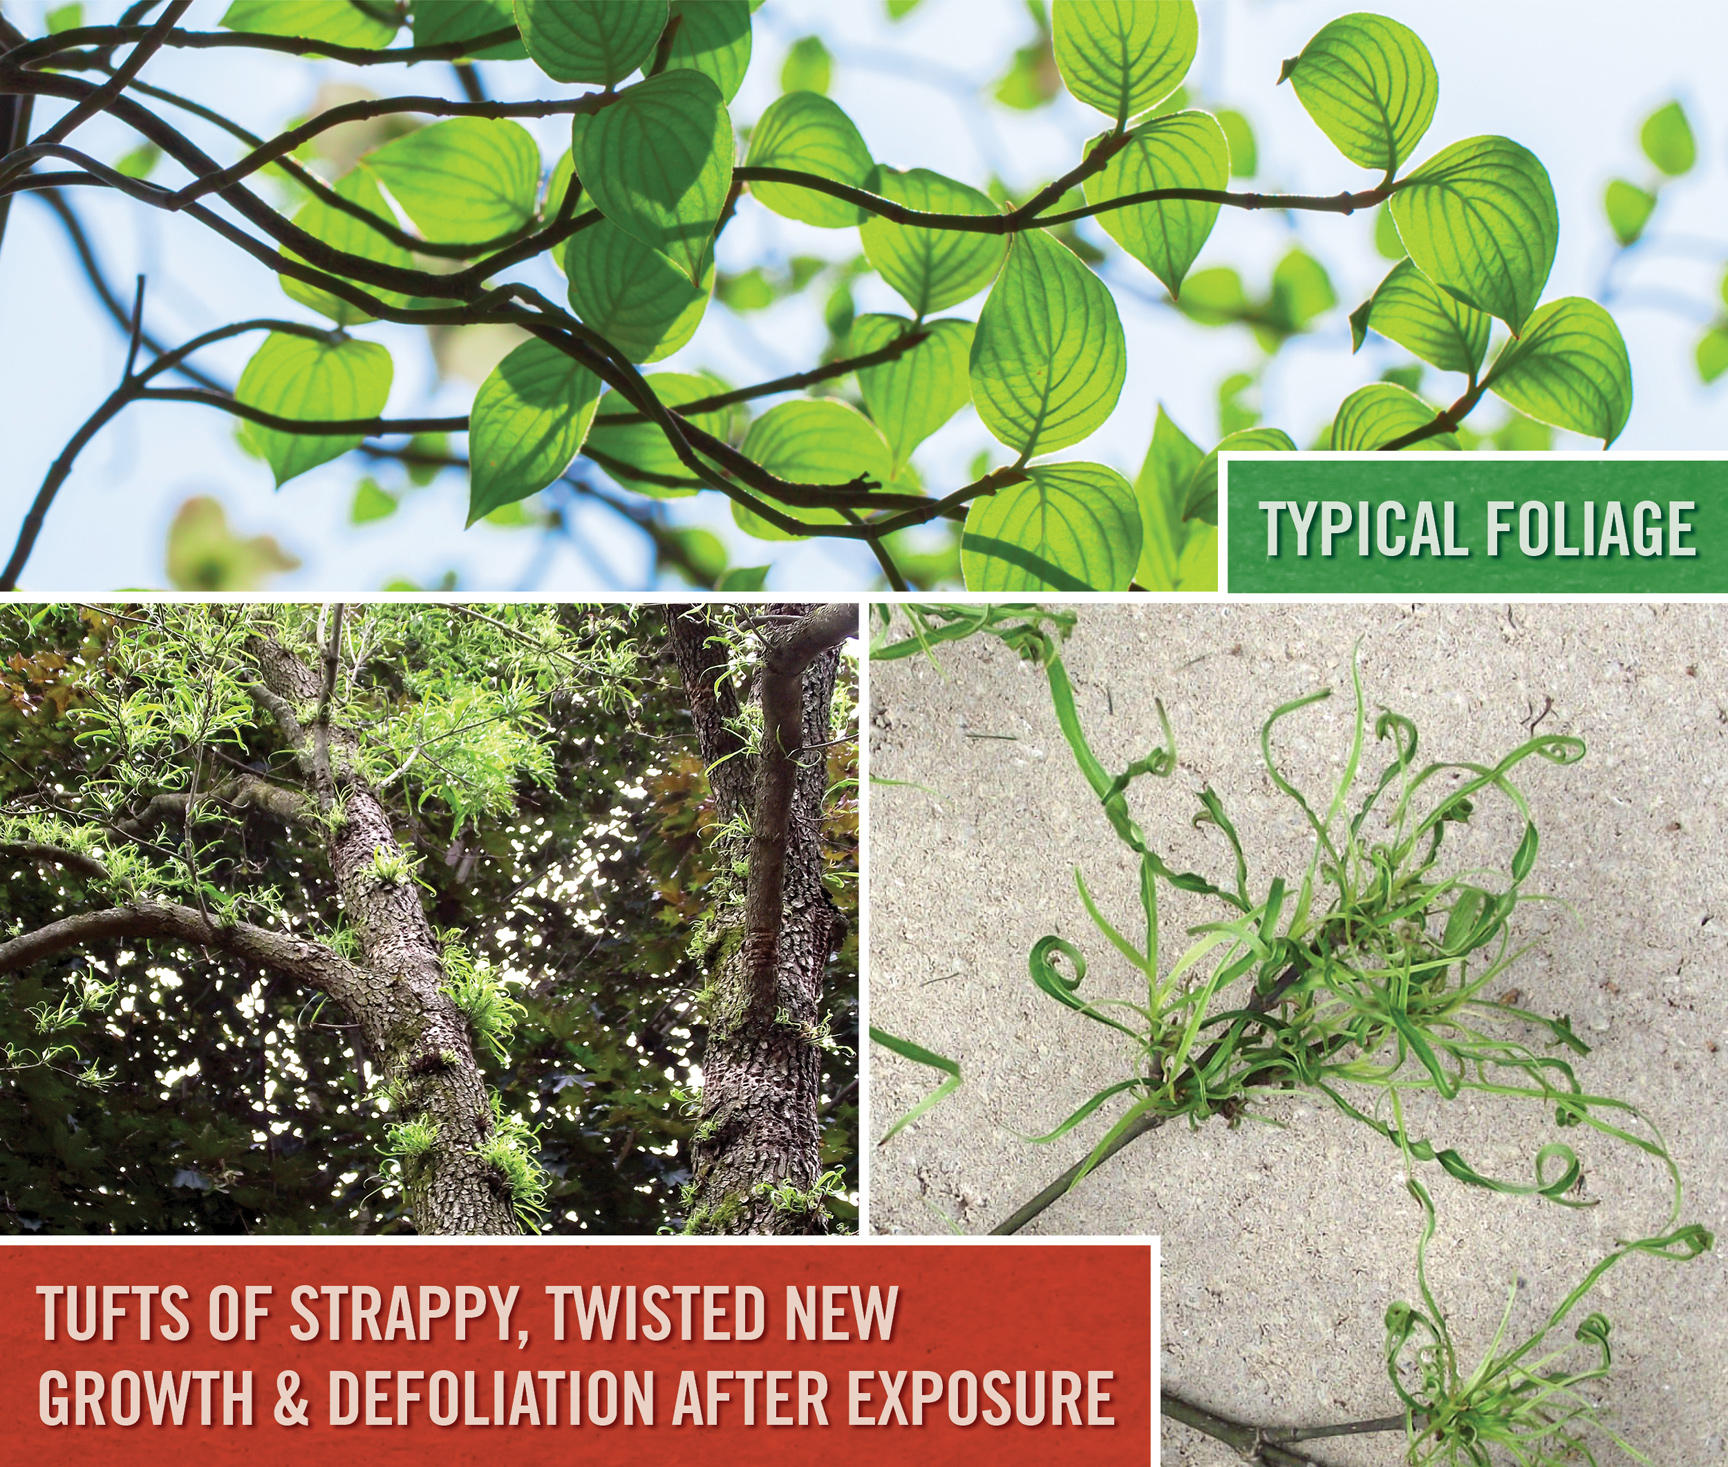 Flowering dogwood before and after exposure to new 'extended control' herbicides